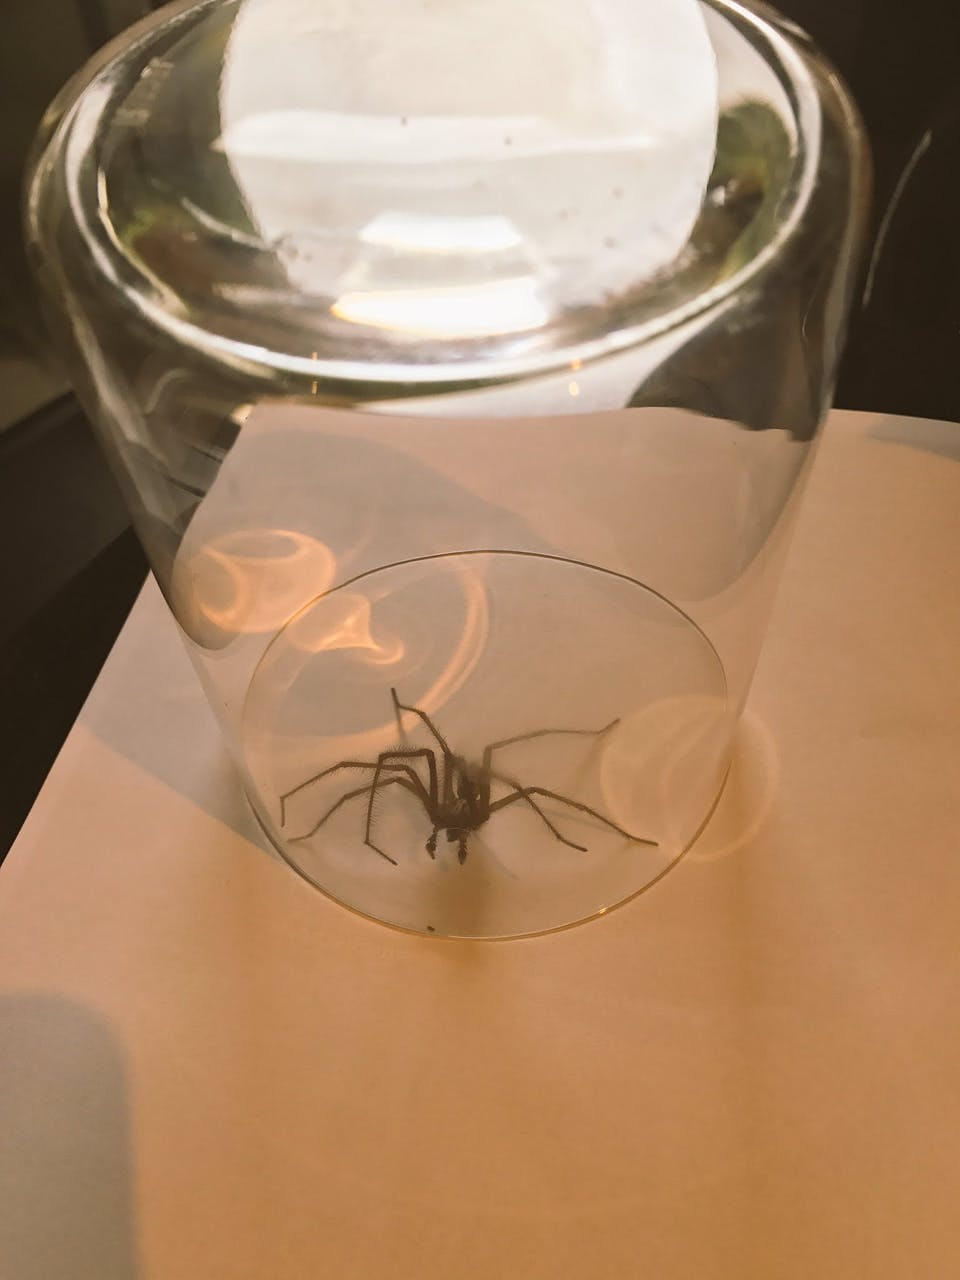 J.K. Rowling's other spider